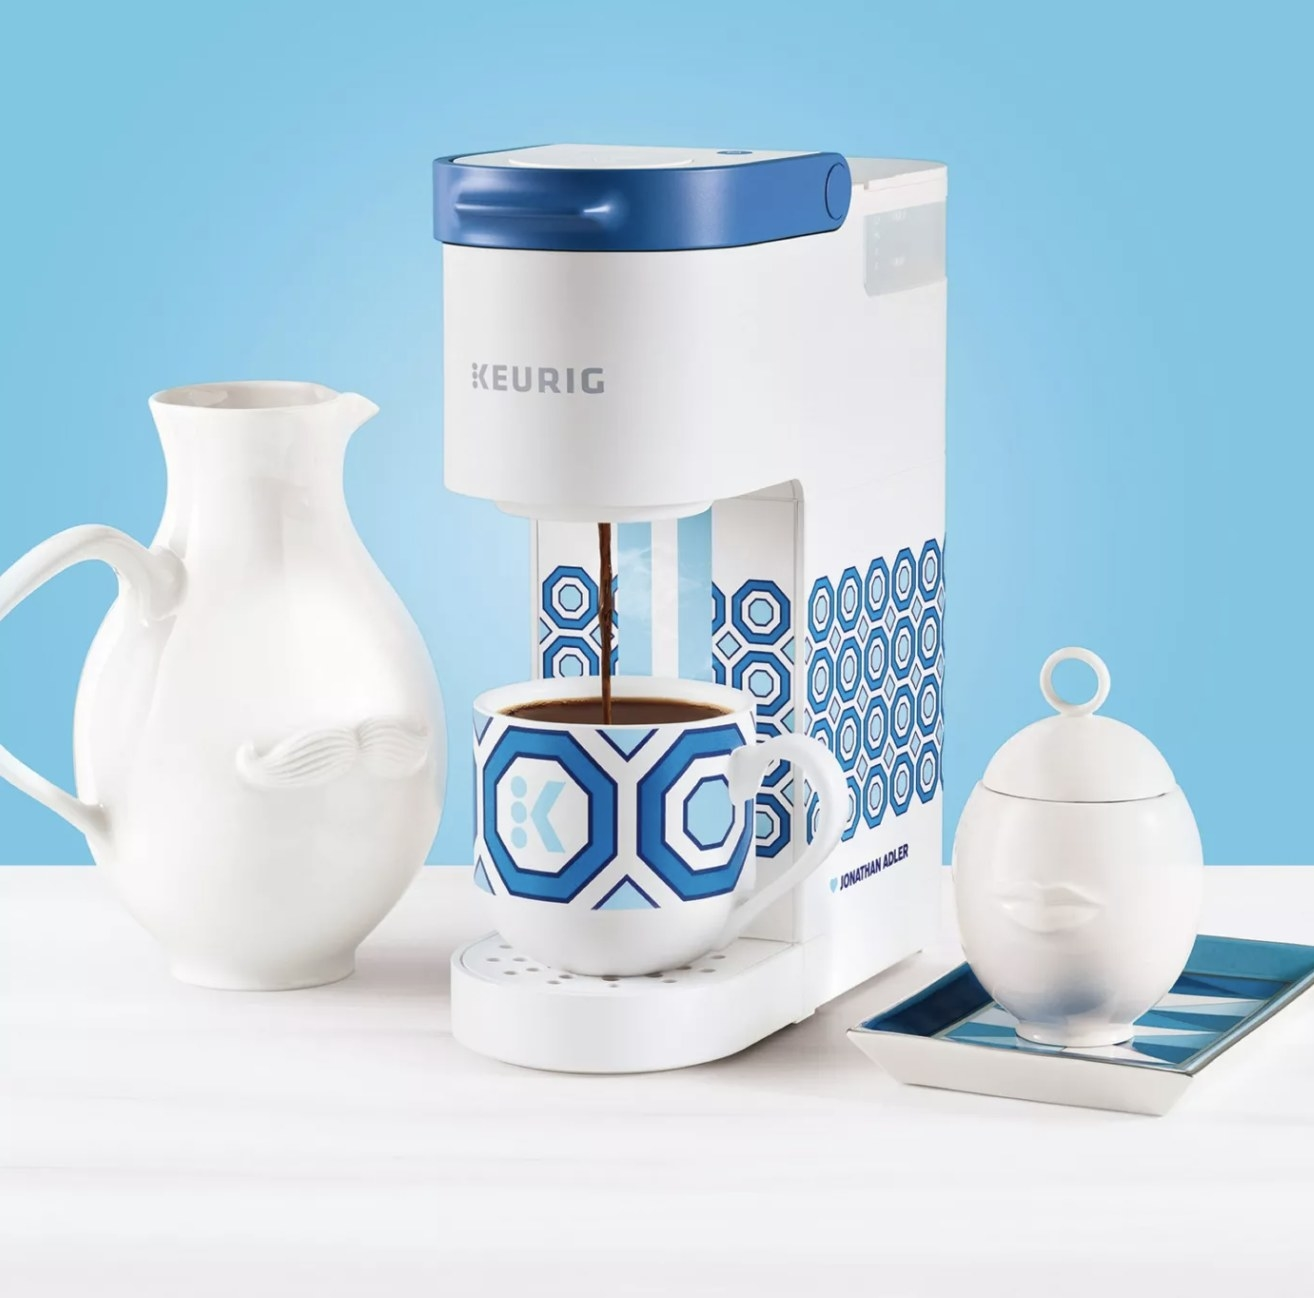 A white single-serve Keurig with blue geometric patterns throughout pouring coffee into a mug